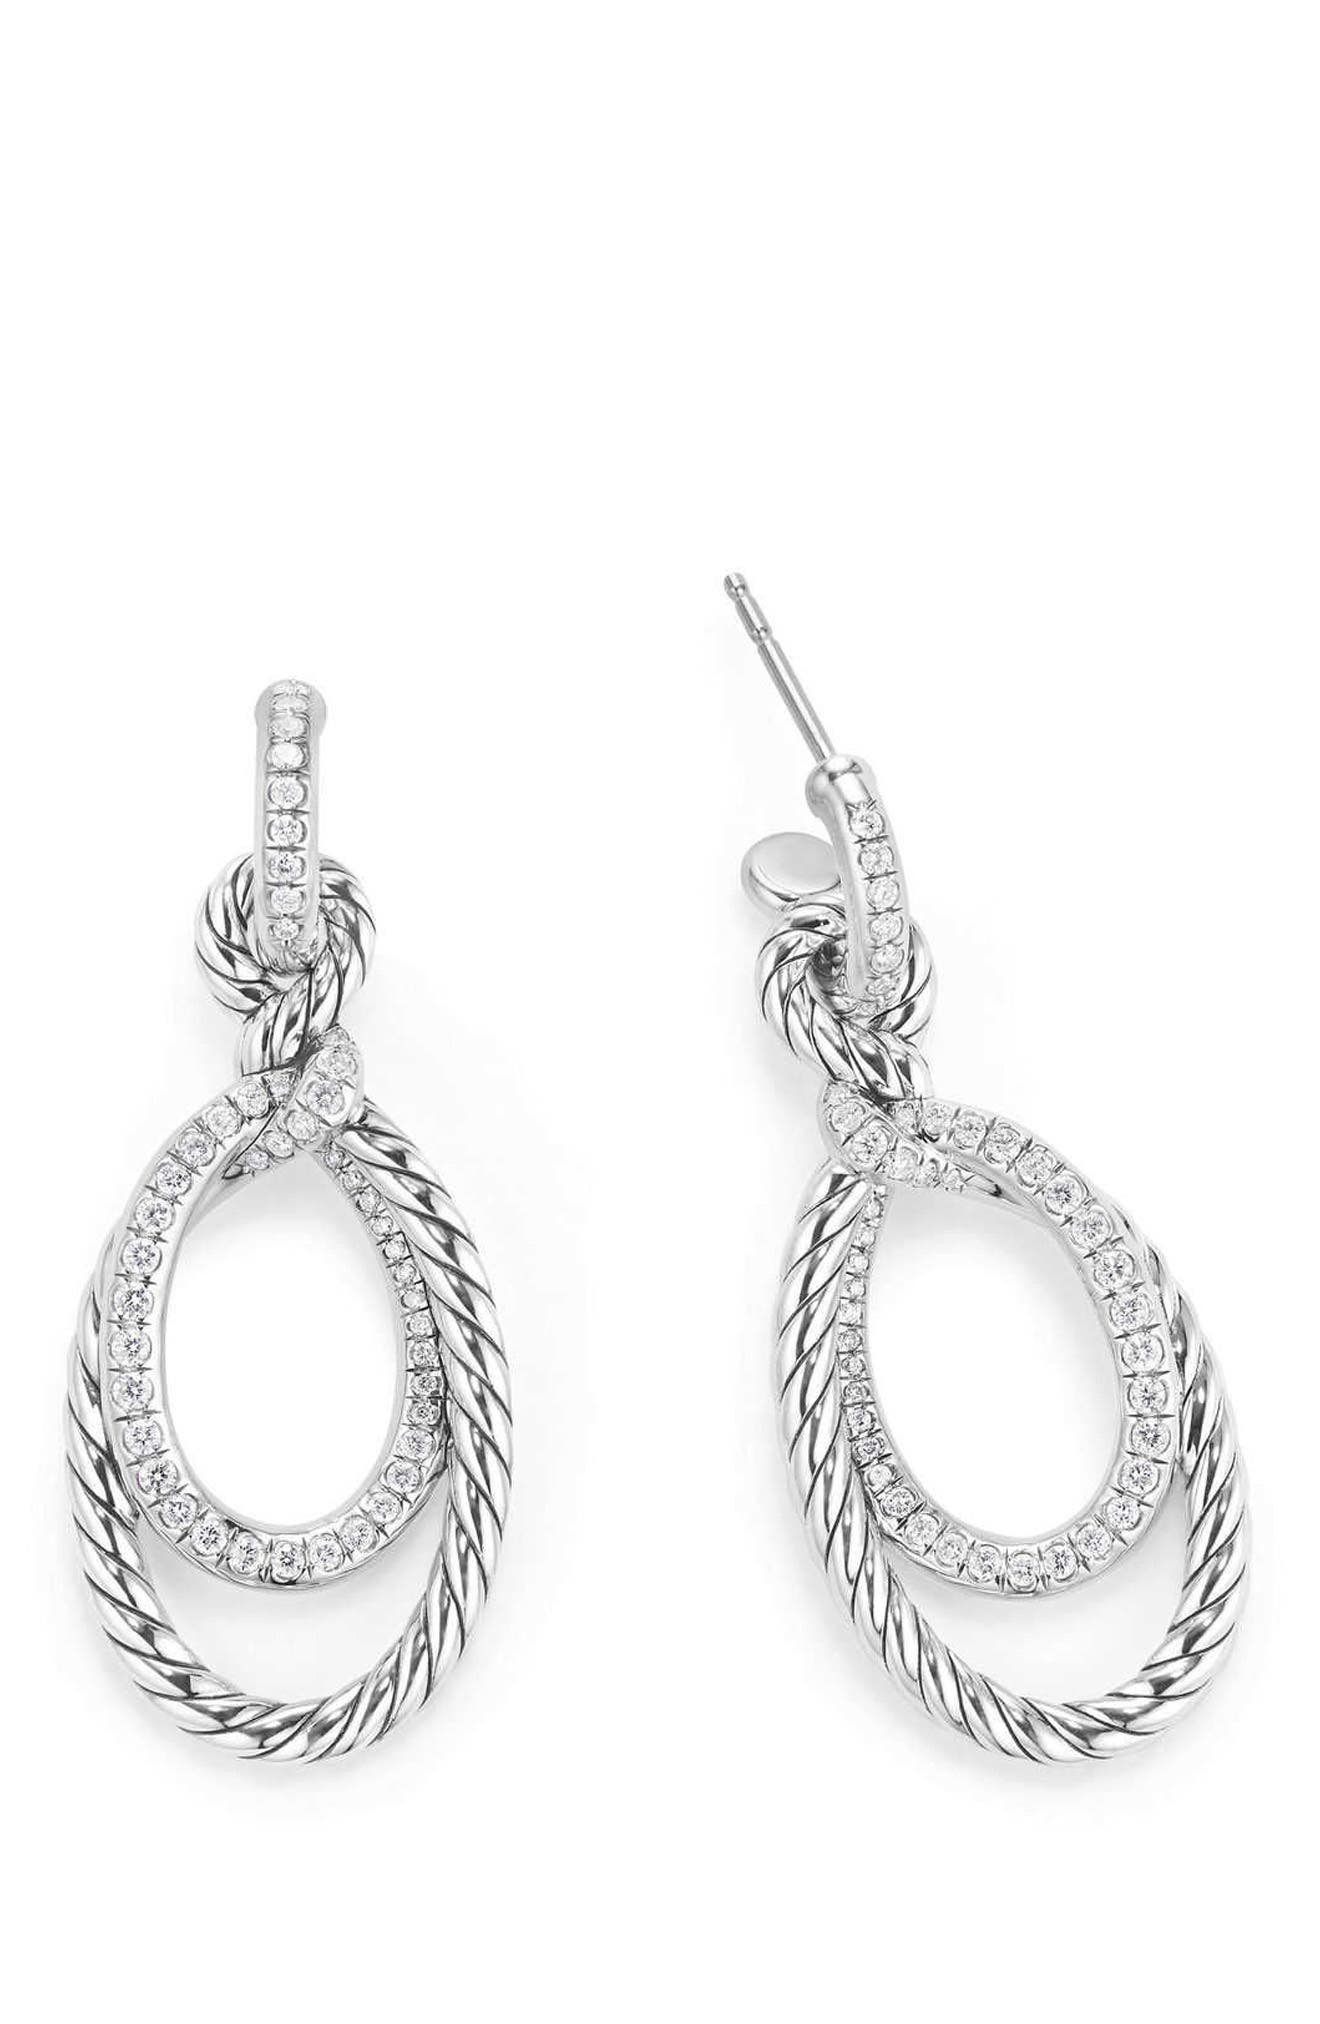 Continuance Drop Earrings with Diamonds,                             Alternate thumbnail 2, color,                             SILVER/ DIAMOND